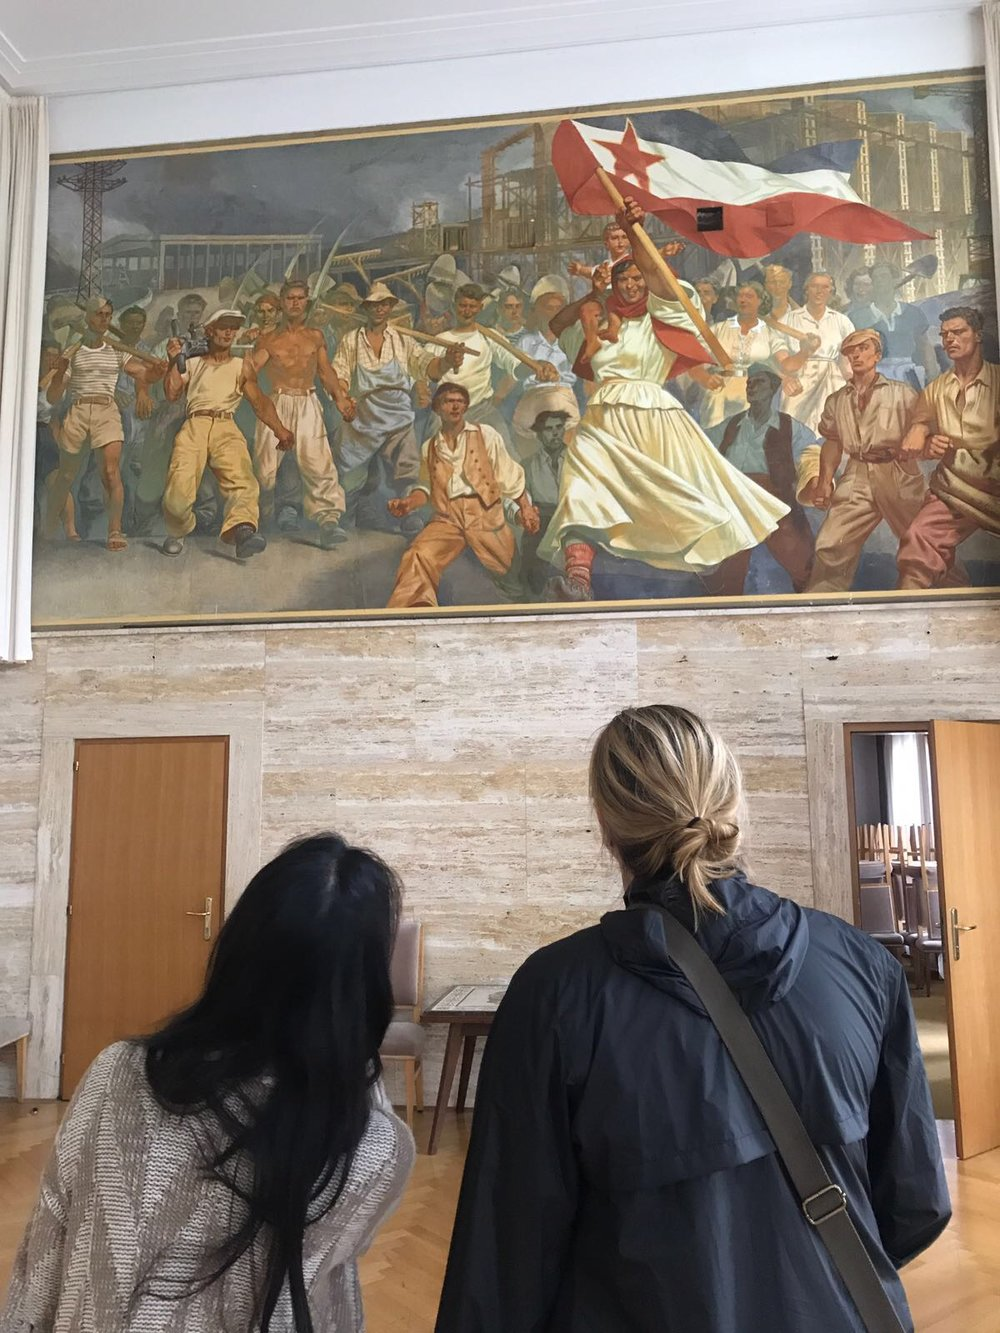 At the former royal summer home and residence of the first-president of Yugoslavia (now a boutique hotel called  Vila Bled ), is this one of the beautiful examples of socialist art hanging on the walls of the congress center.